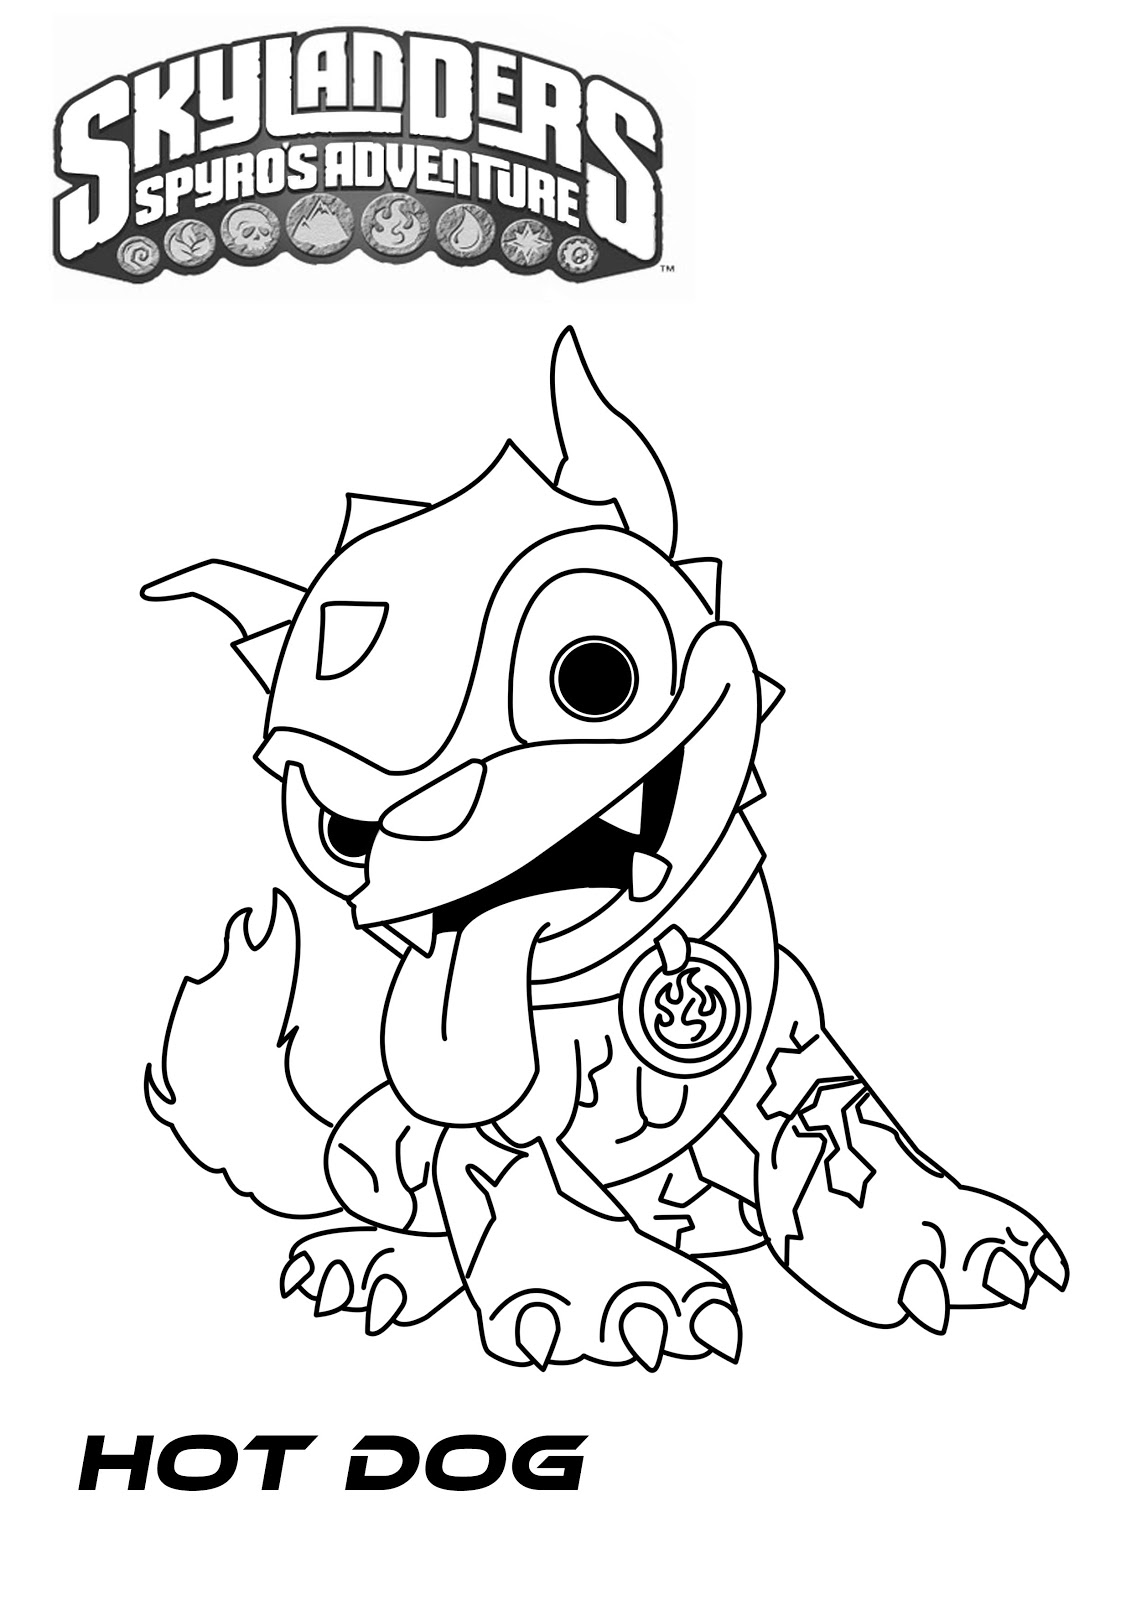 skylanders coloring pages free skylander giant coloring pages download and print for free skylanders pages free coloring